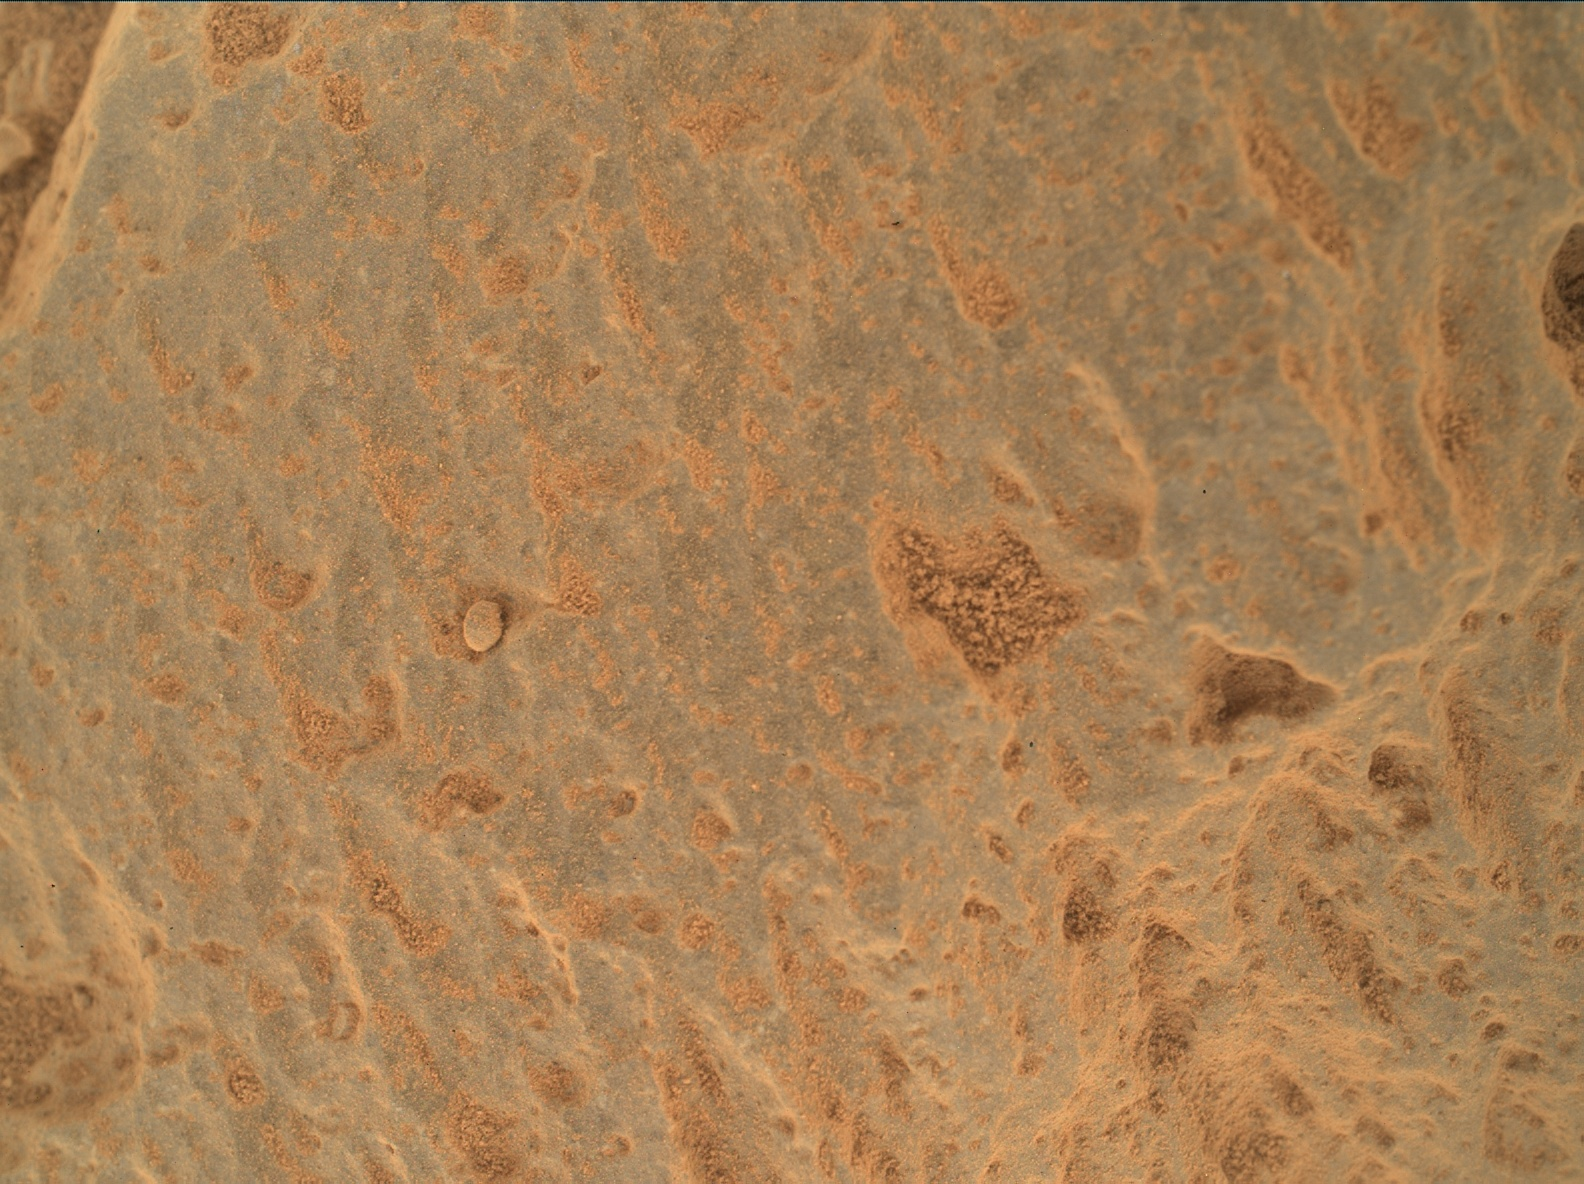 Nasa's Mars rover Curiosity acquired this image using its Mars Hand Lens Imager (MAHLI) on Sol 360